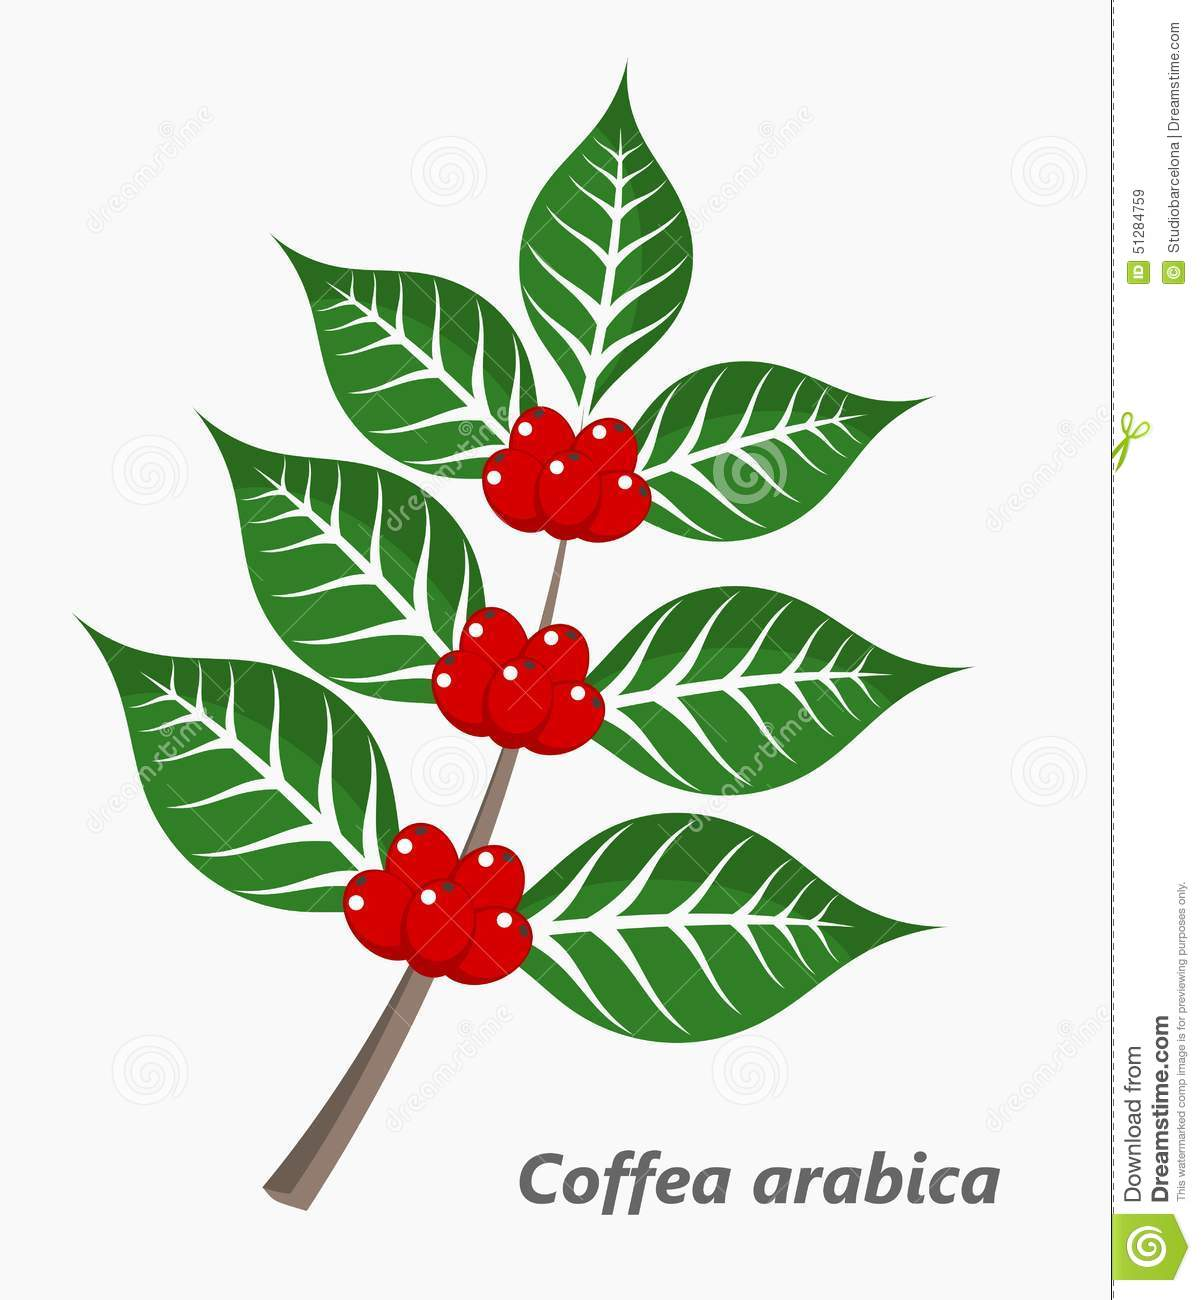 Coffee plant stock vector. Illustration of growth, branch ...